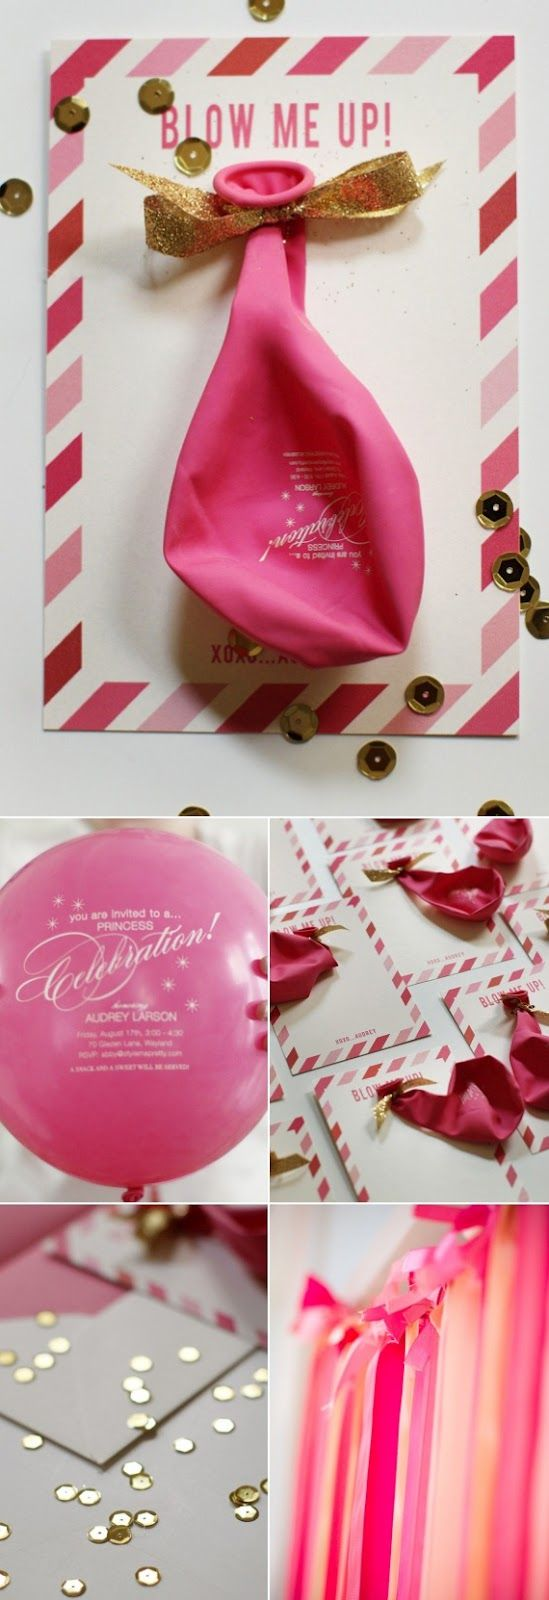 Best 25 Unique invitations ideas on Pinterest Unique wedding